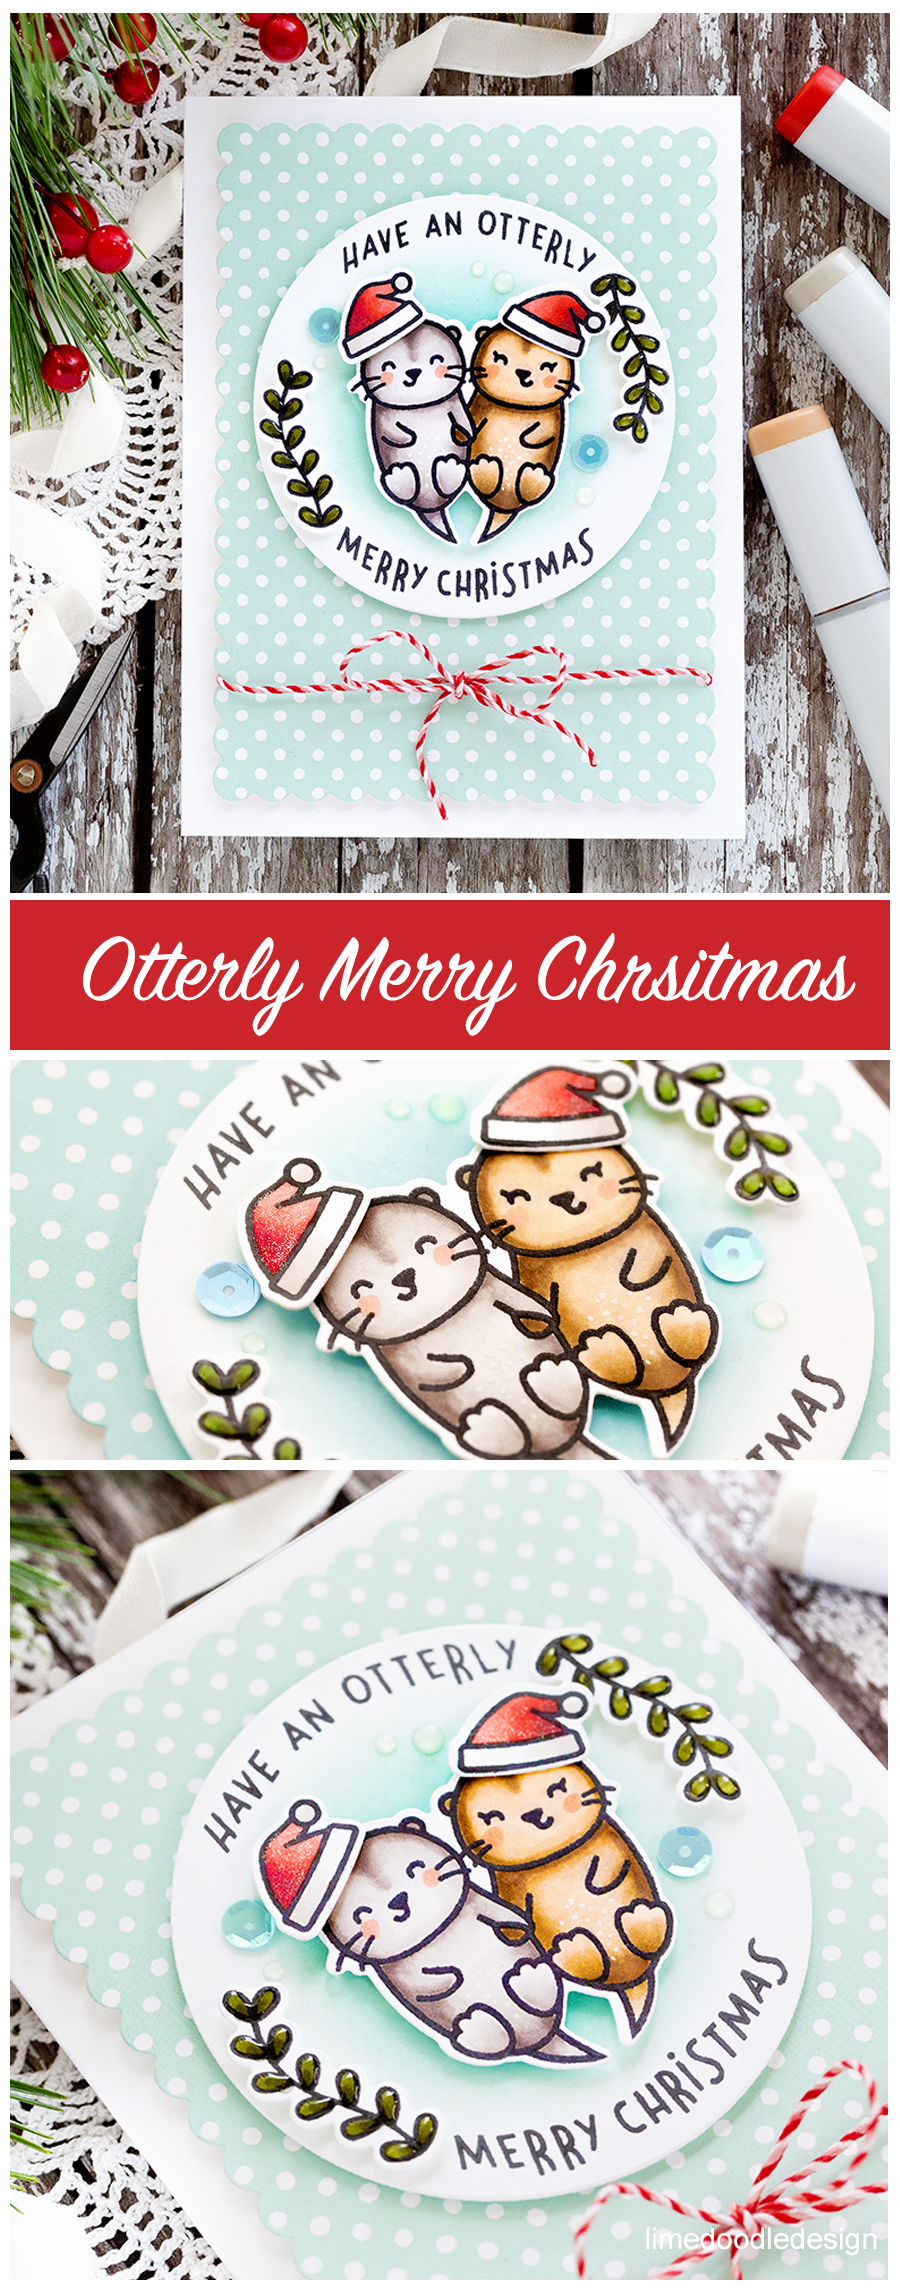 The much anticipated and always highly popular Lawn Fawn STAMPtember 2017 set - Christmas Like No Otter. Handmade card by Debby Hughes. Find out more here: https://limedoodledesign.com/2017/09/lawn-fawn-stamptember/